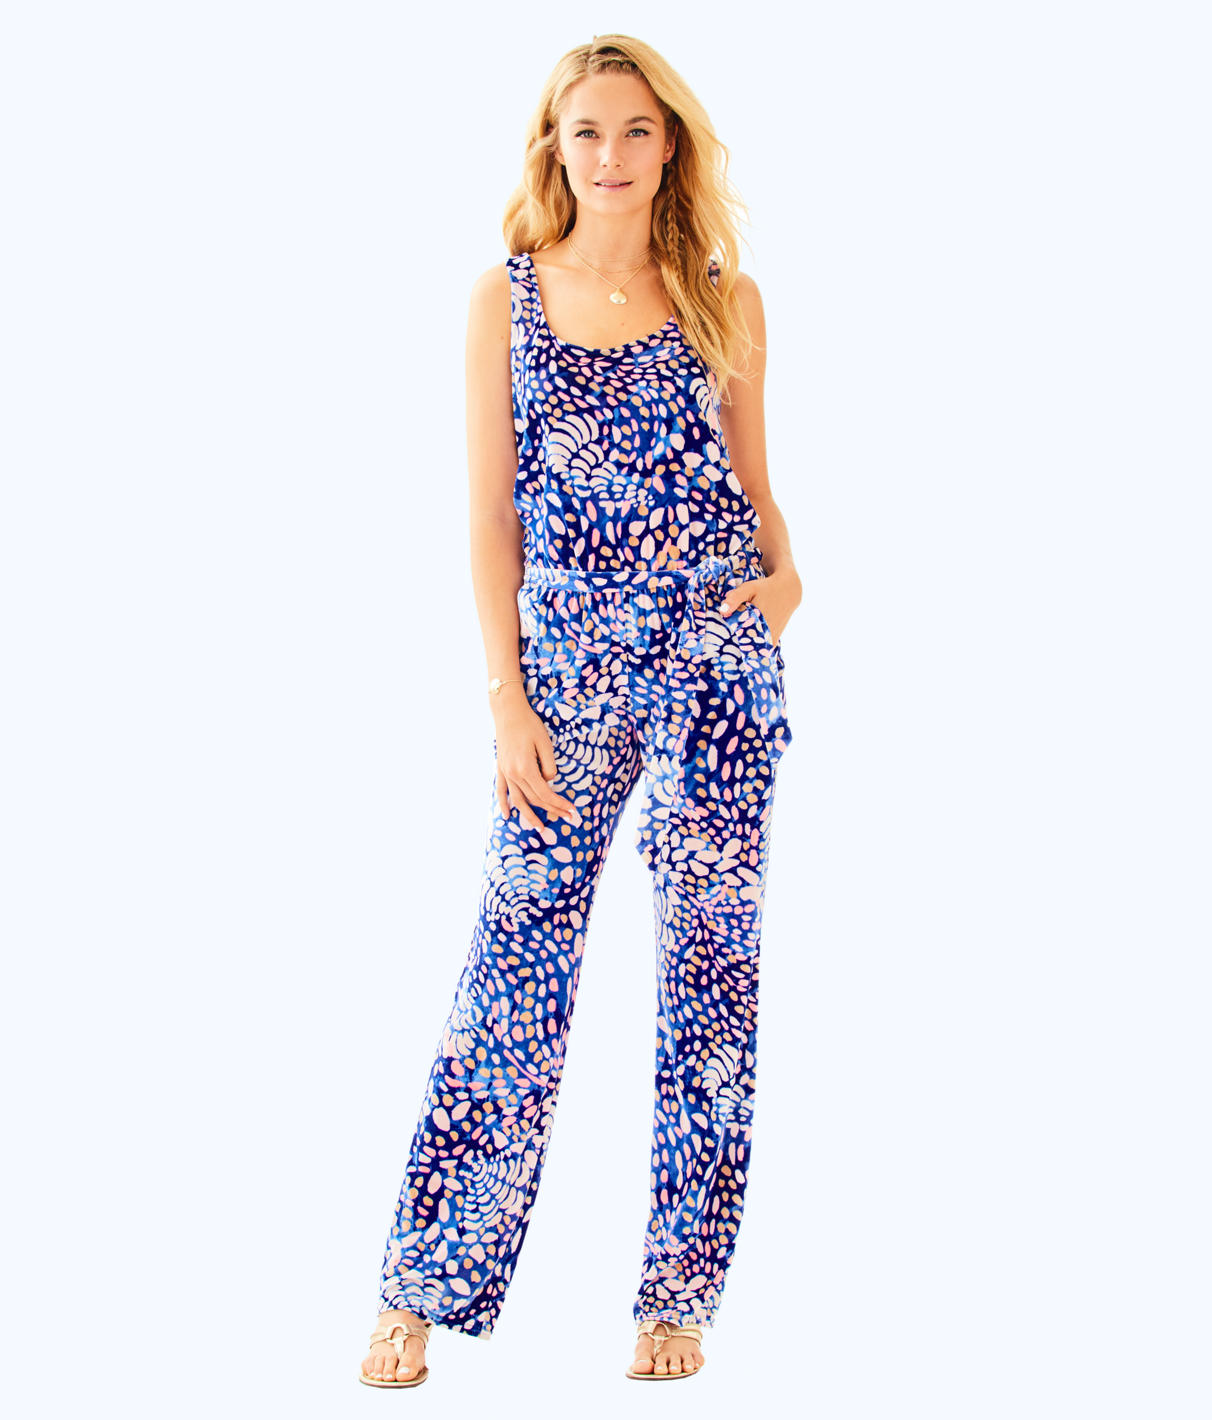 Lilly Pulitzer Lilly Pulitzer Womens Nena Jumpsuit